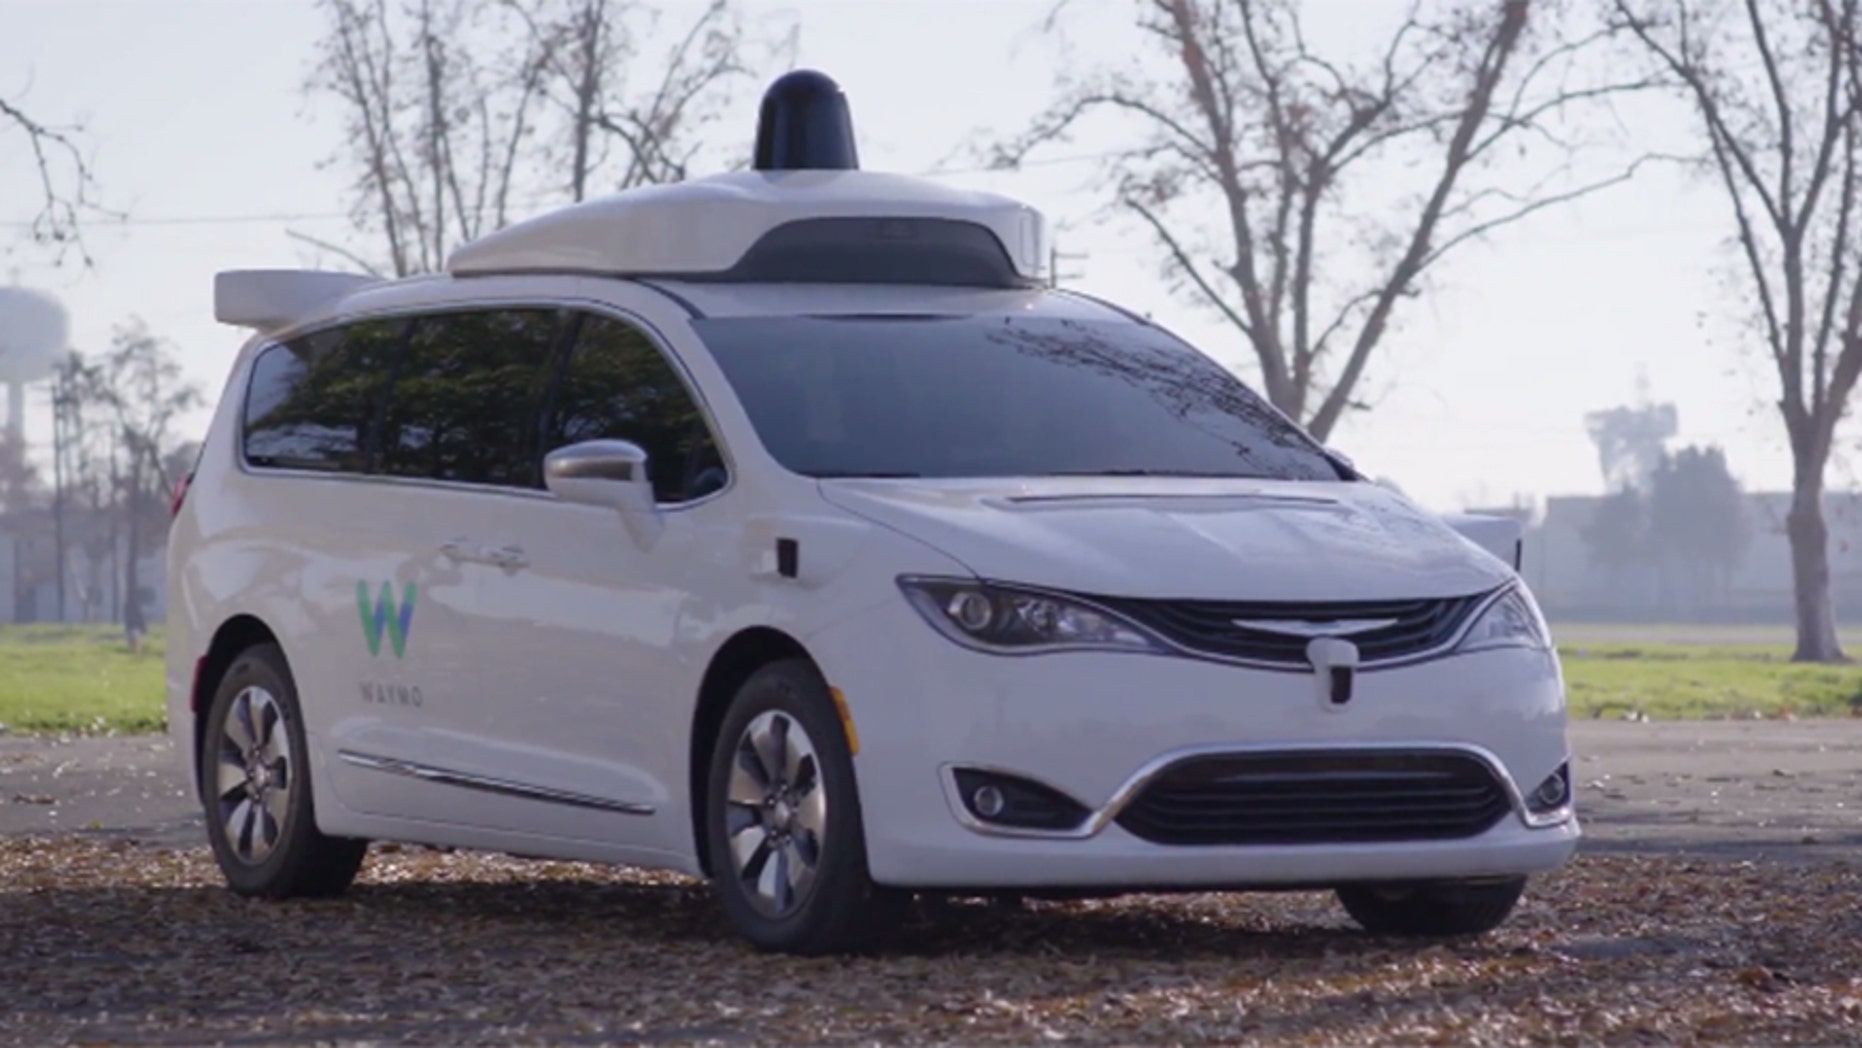 Waymo launching self-driving car service next month, report says